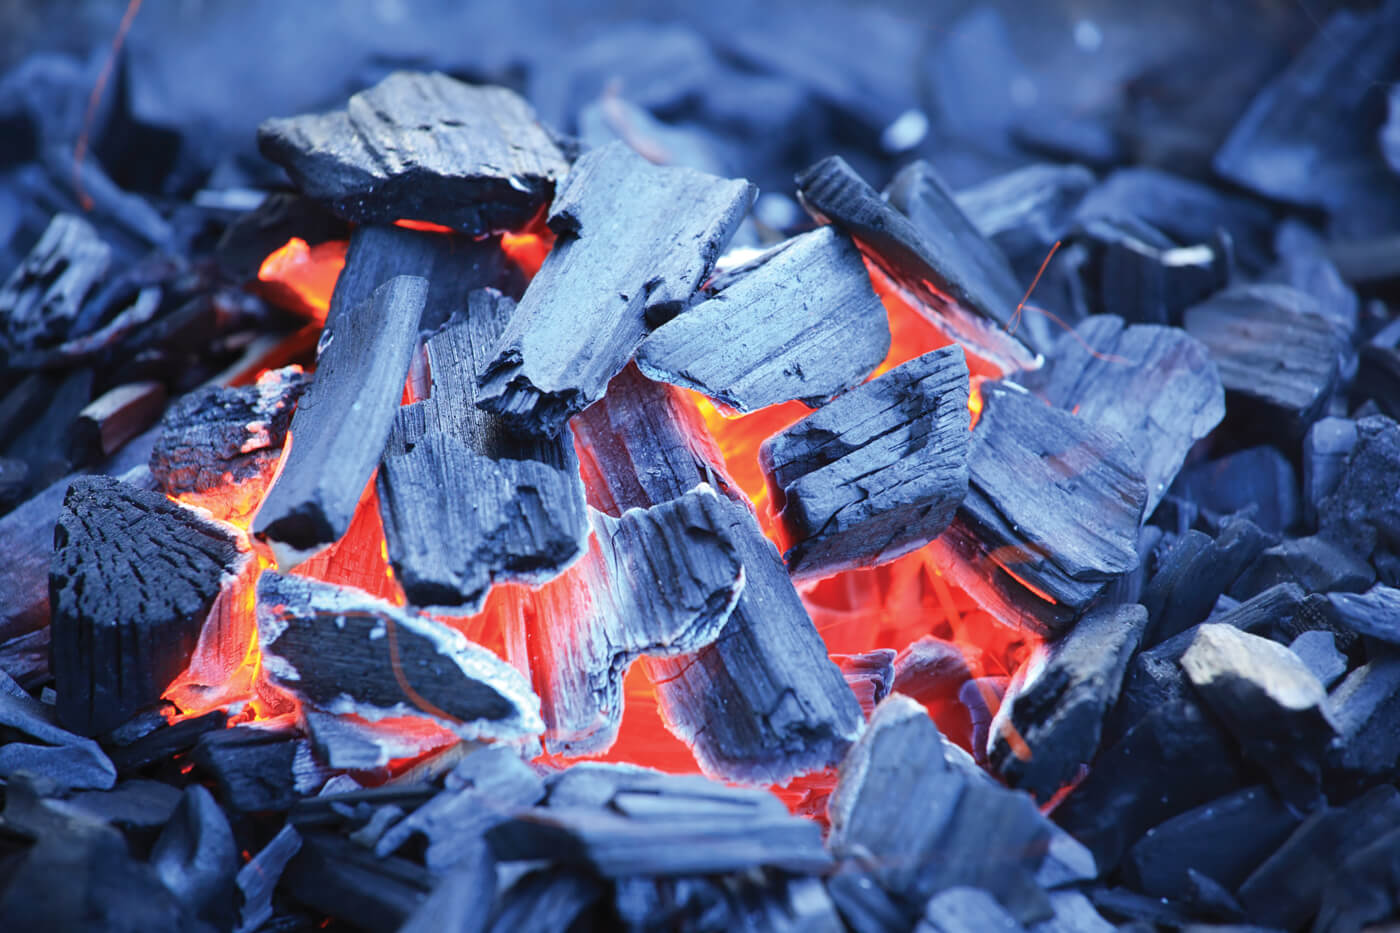 When waiting for your fire to mature, look for the orange-pink glow in between the wood chips. Excessive smoke should subside, as well.